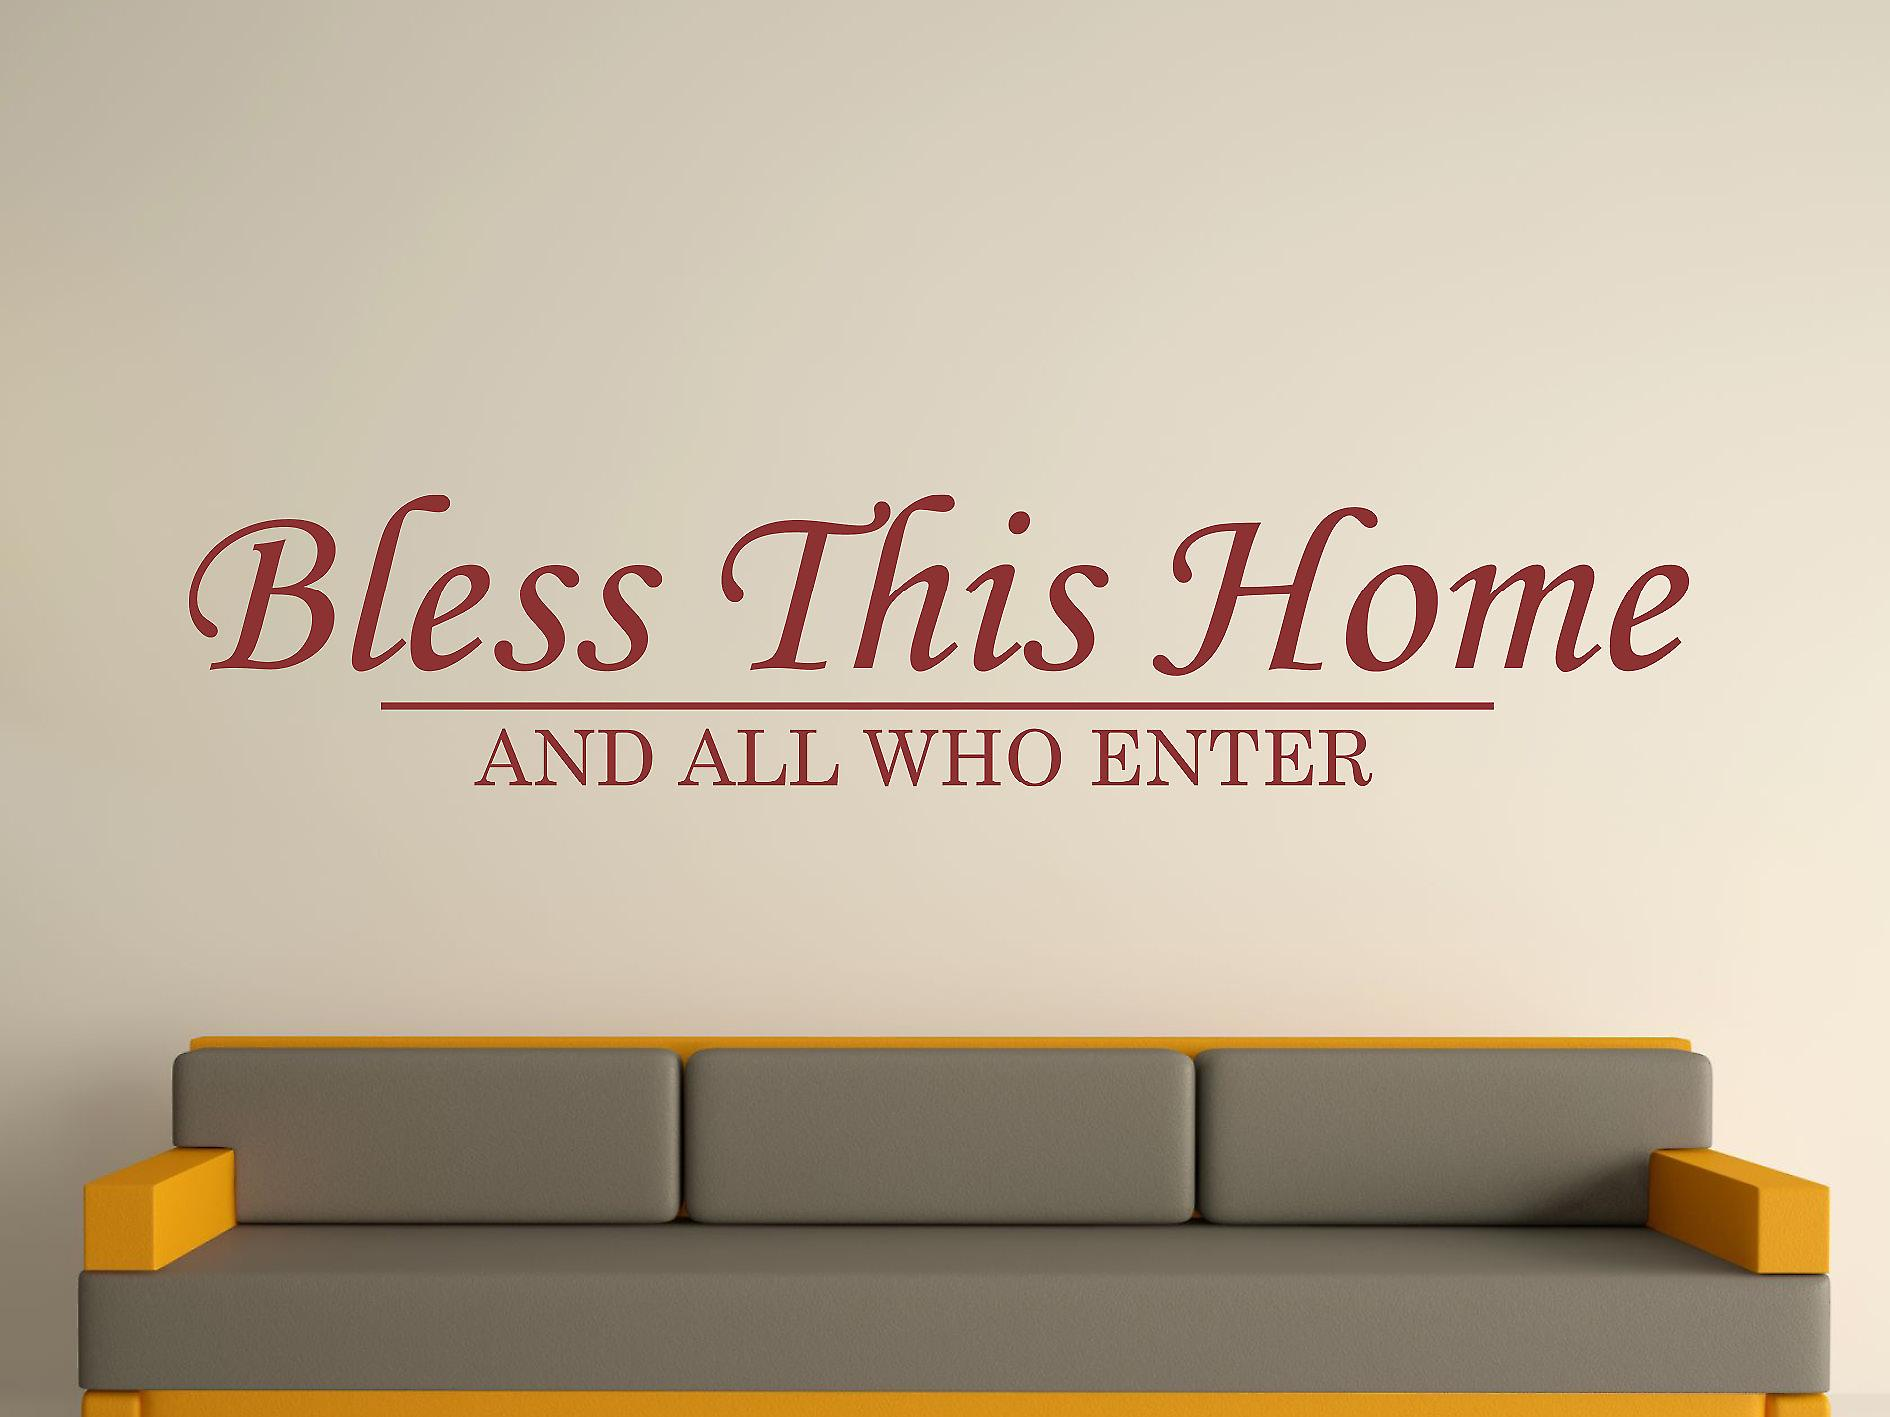 Bless This Home Wall Art Sticker - Burgundy